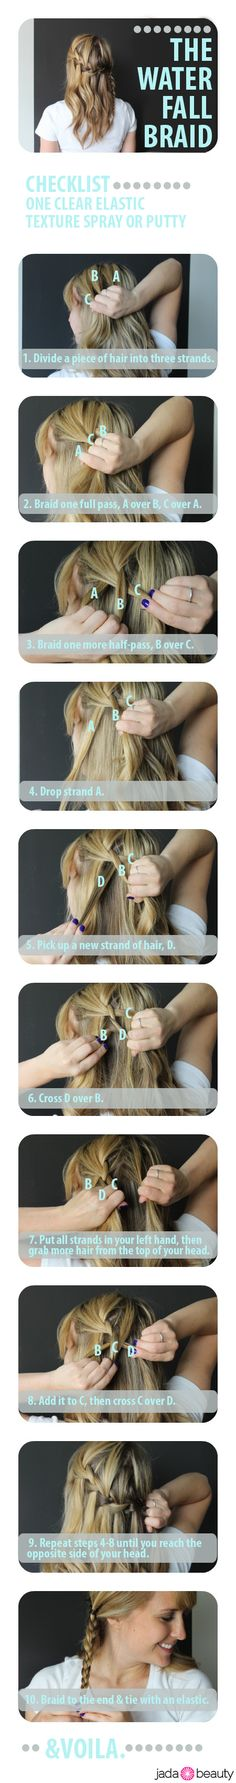 Finally! The Waterfall Braid Made Easy!